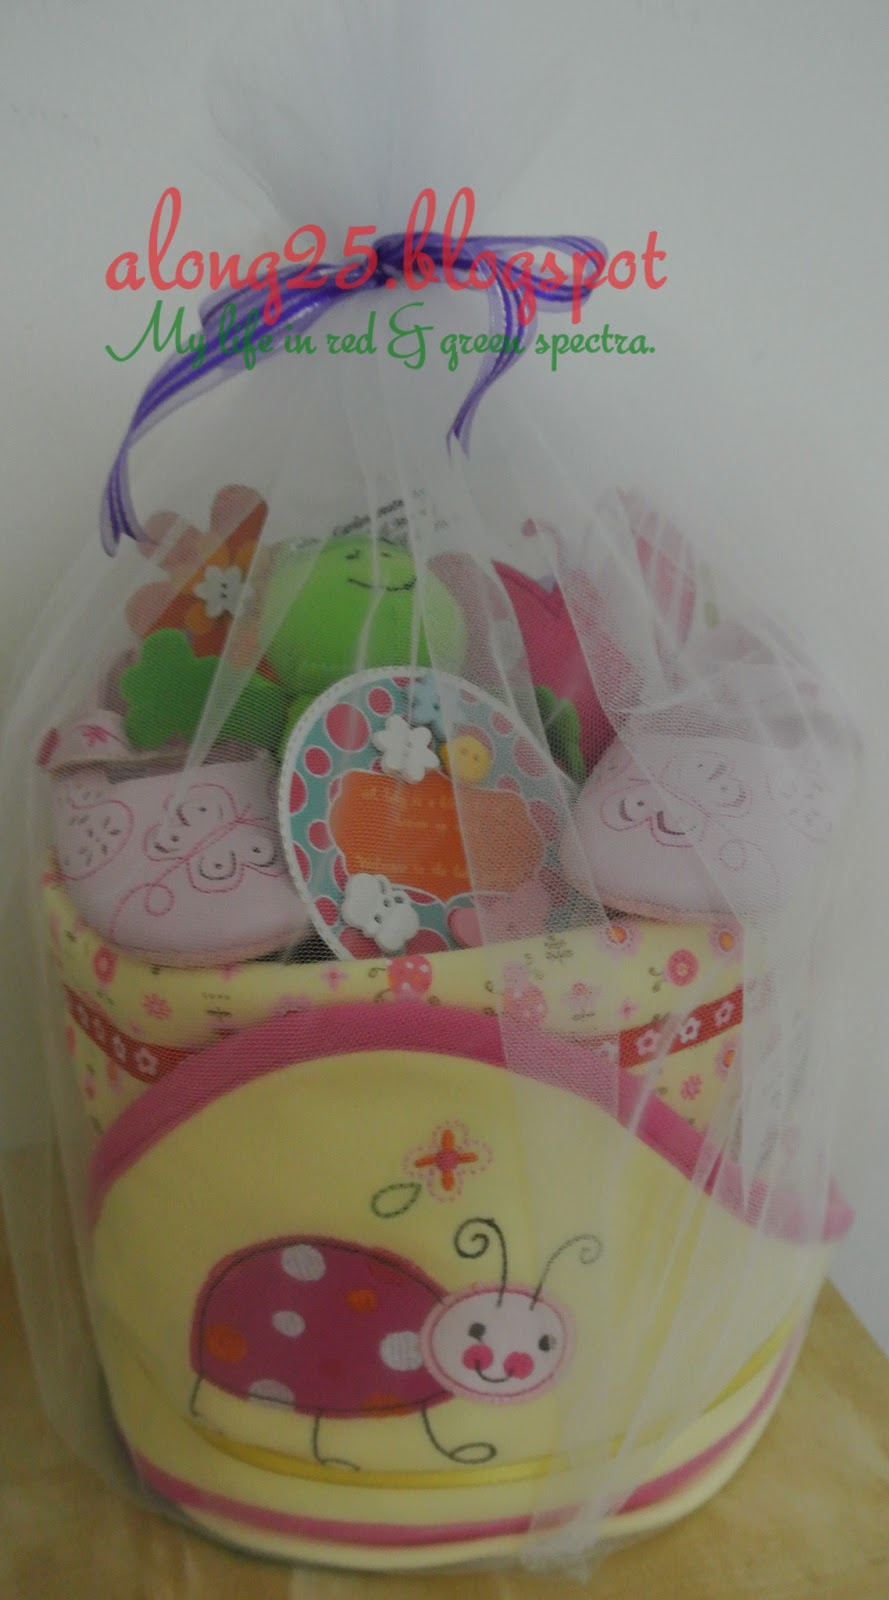 blog along25 diapers cake lawa murah hadiah baby hamper